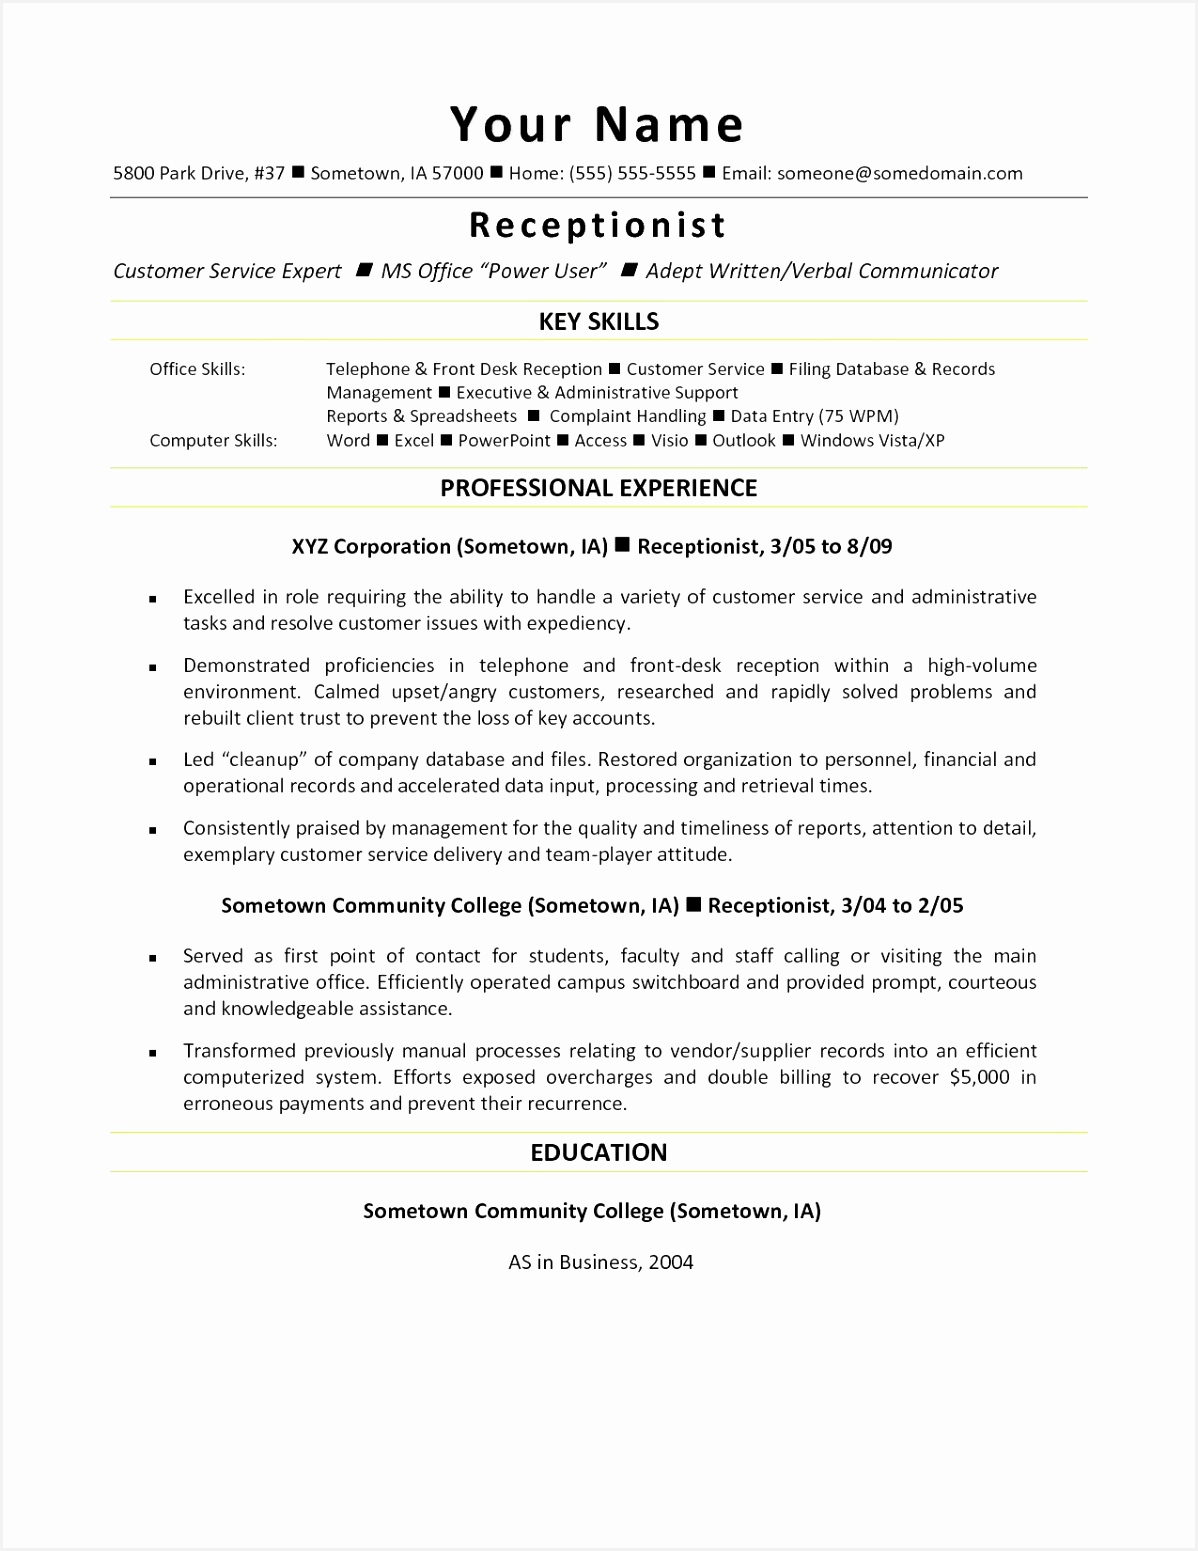 financial reporting manager resume unique career focus resume new career focus resume new fresh resume 0d 155111980tYEv